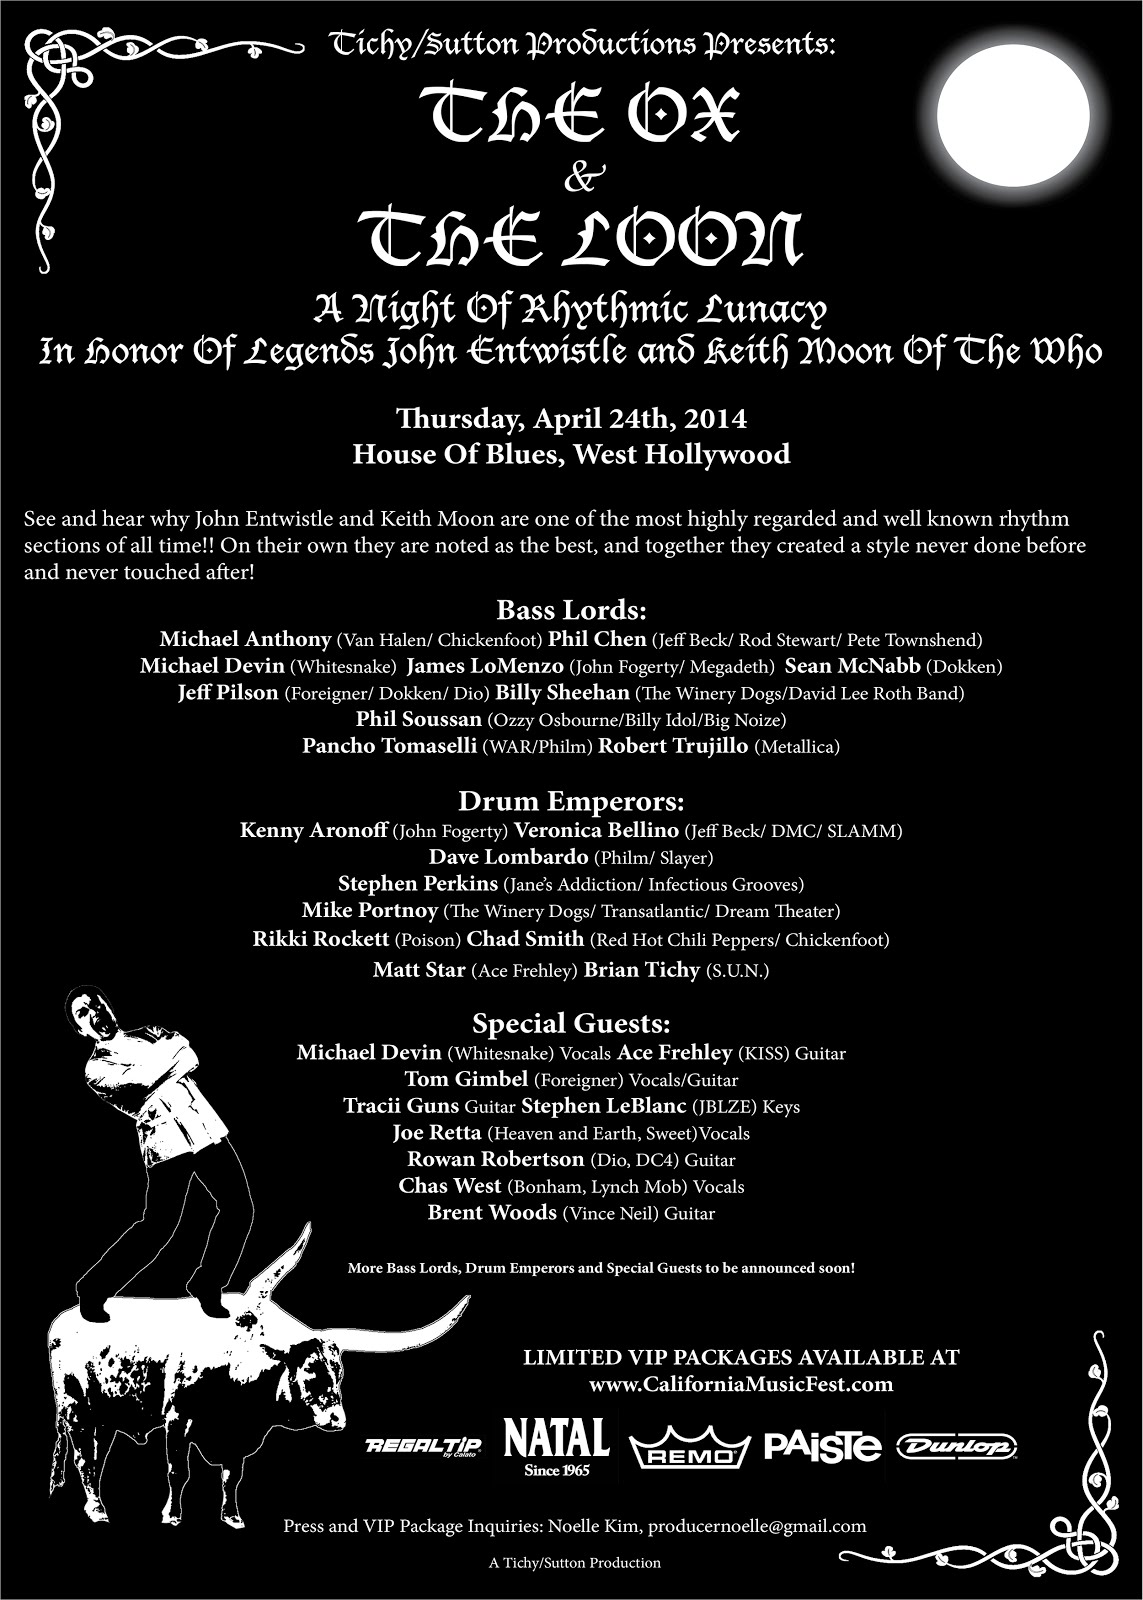 HUGE ALL-STAR LINEUP FOR THE OX AND THE LOON – A TRIBUTE TO ENTWISTLE AND MOON – HOUSE OF BLUES SUNSET 4/24/2014